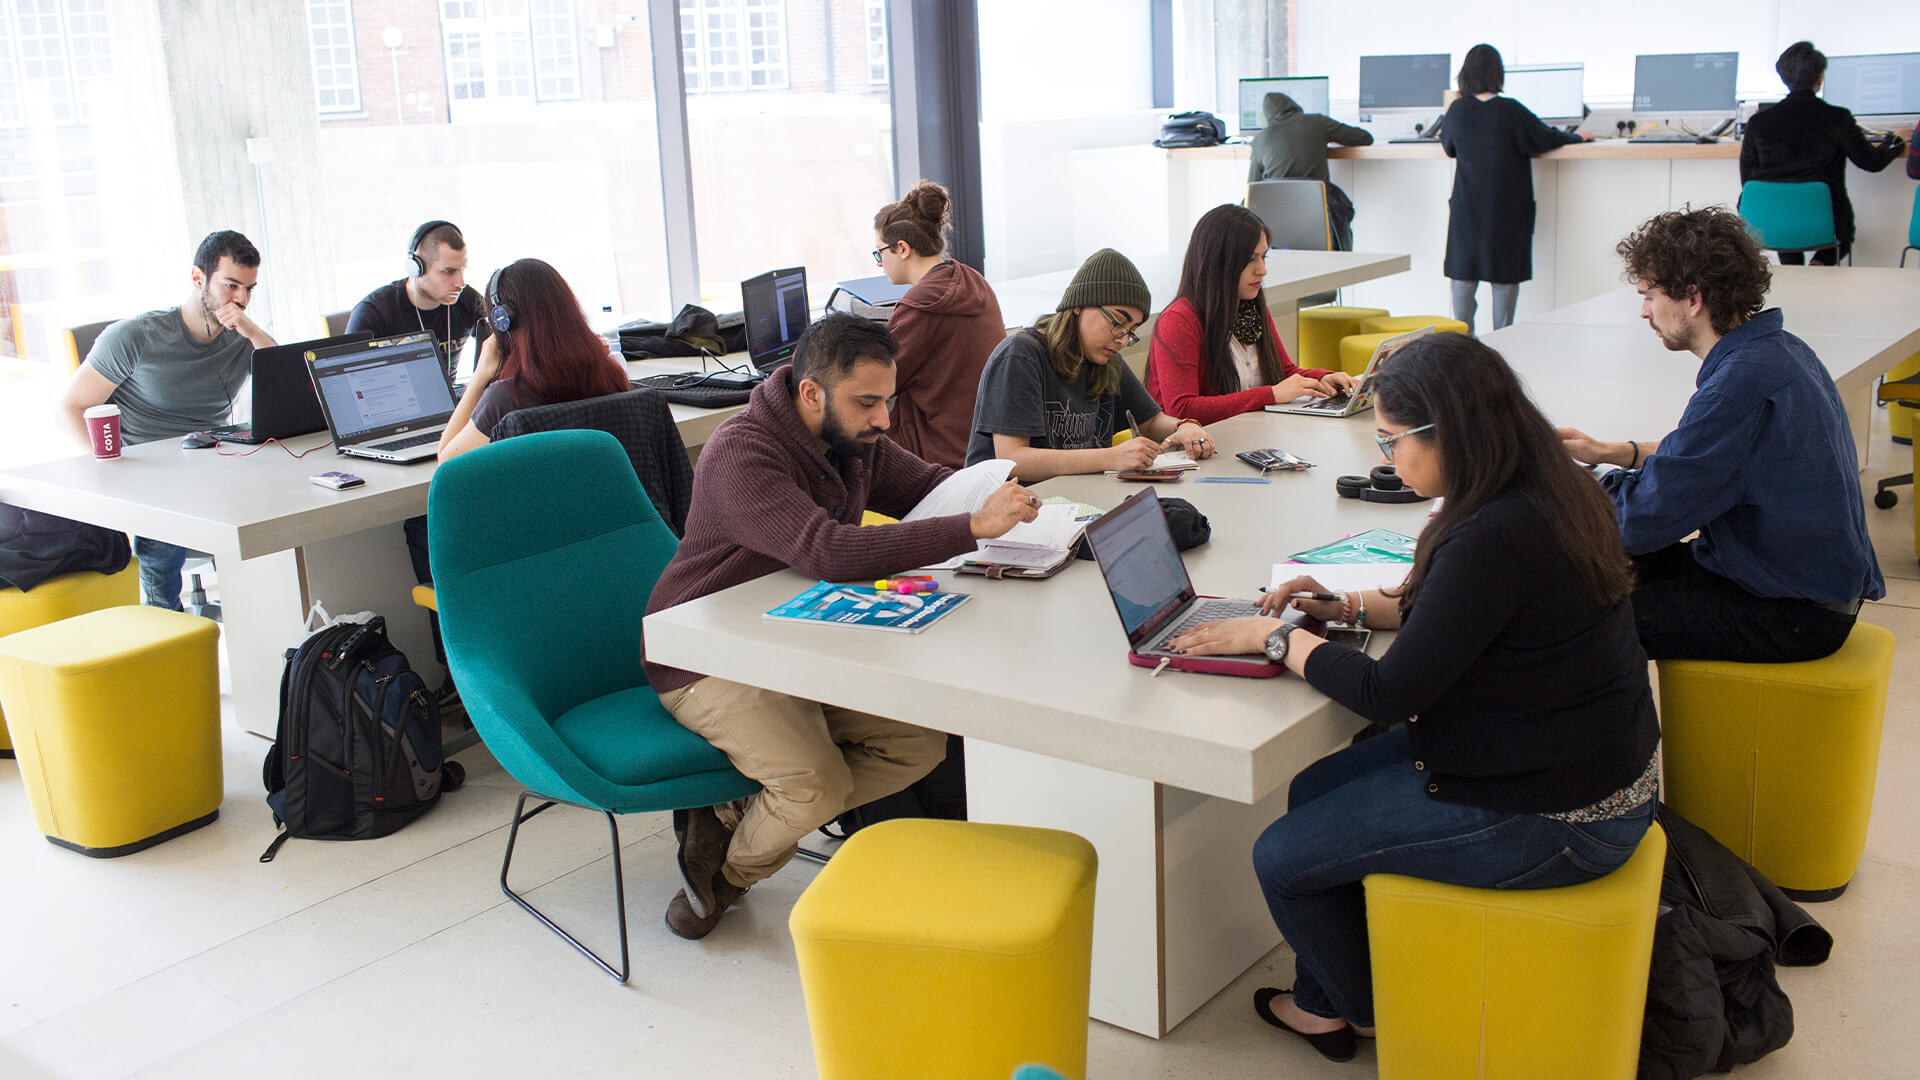 Students studying in breakout area at City, University of London